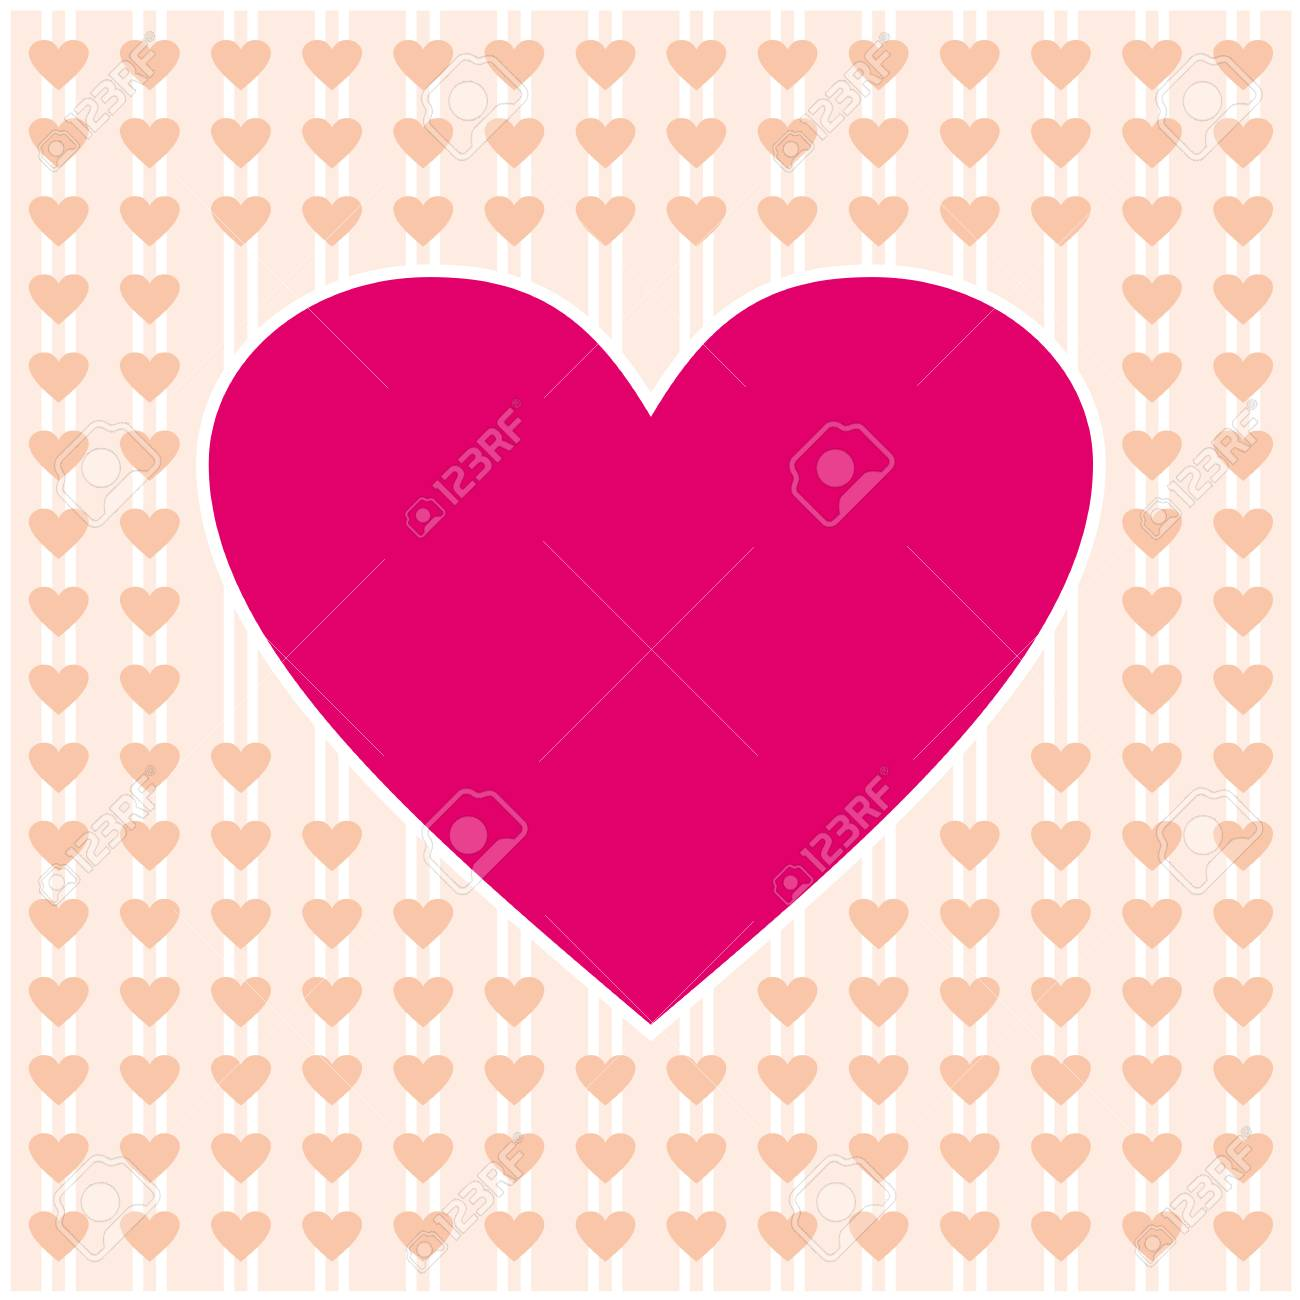 Pink Heart Border Frame Vector Design For Valentines Day Love Card And Wedding Stock